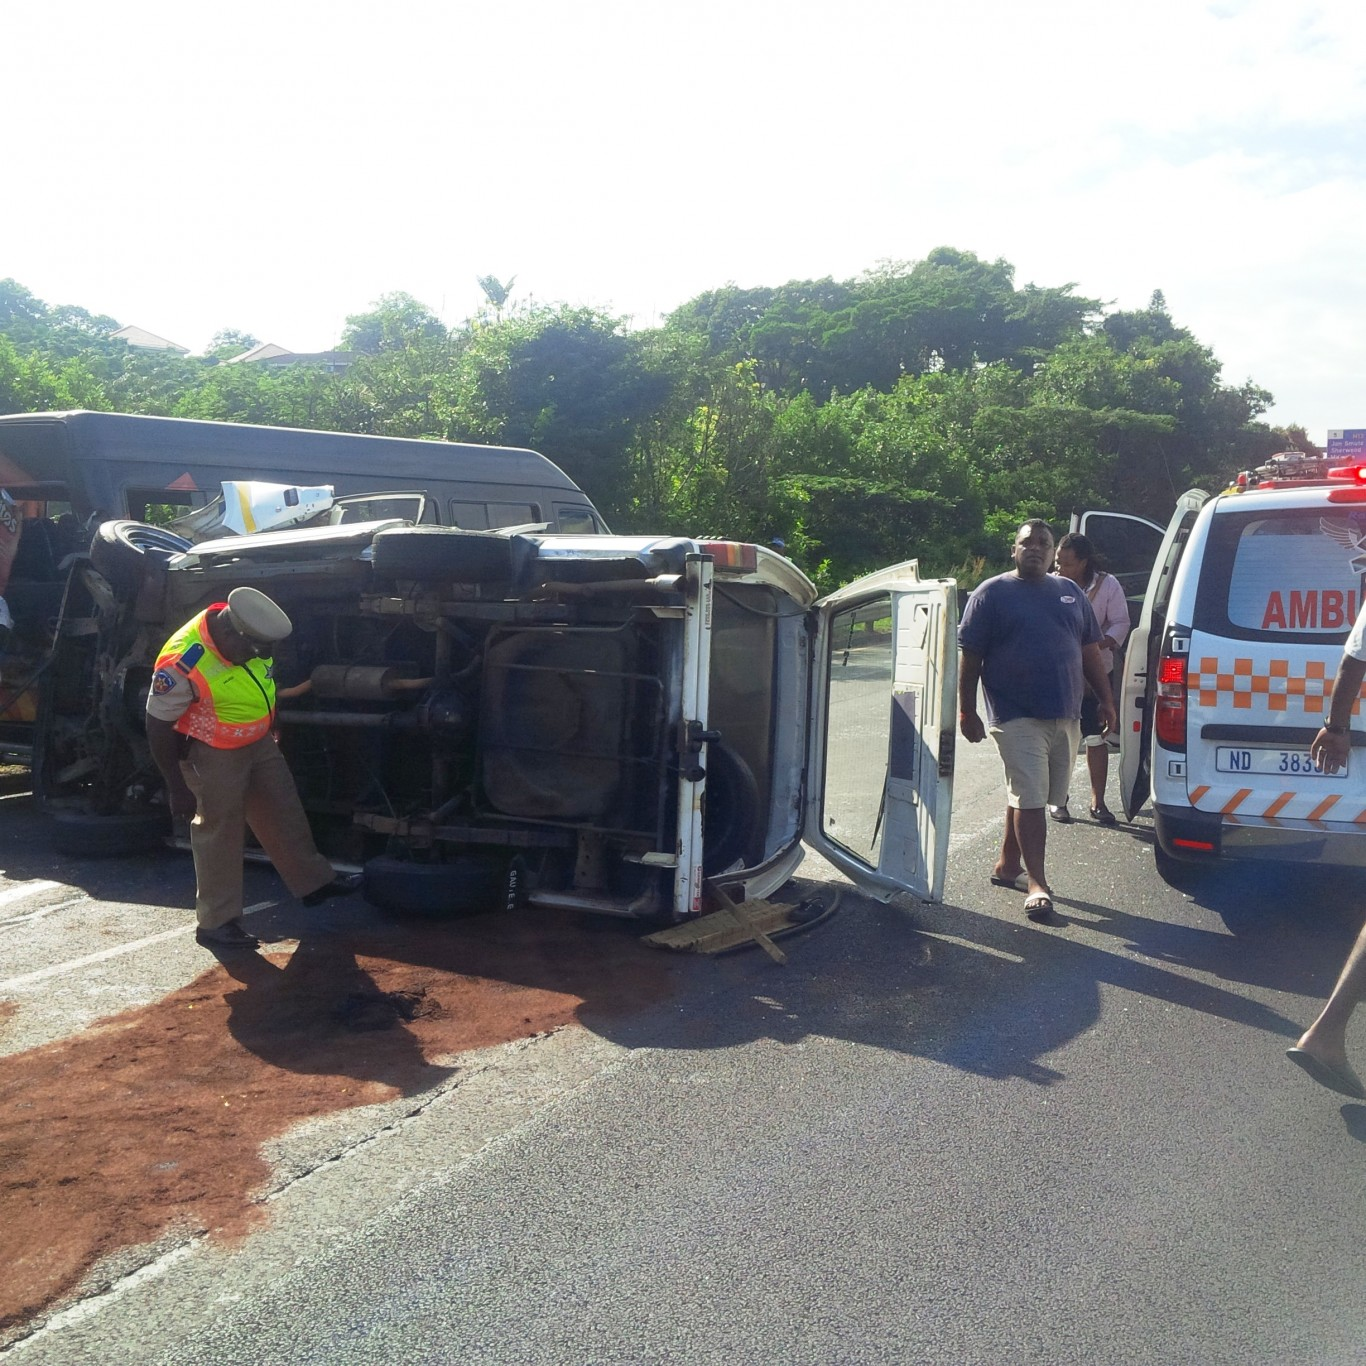 15 Hurt in taxi rollover in Durban